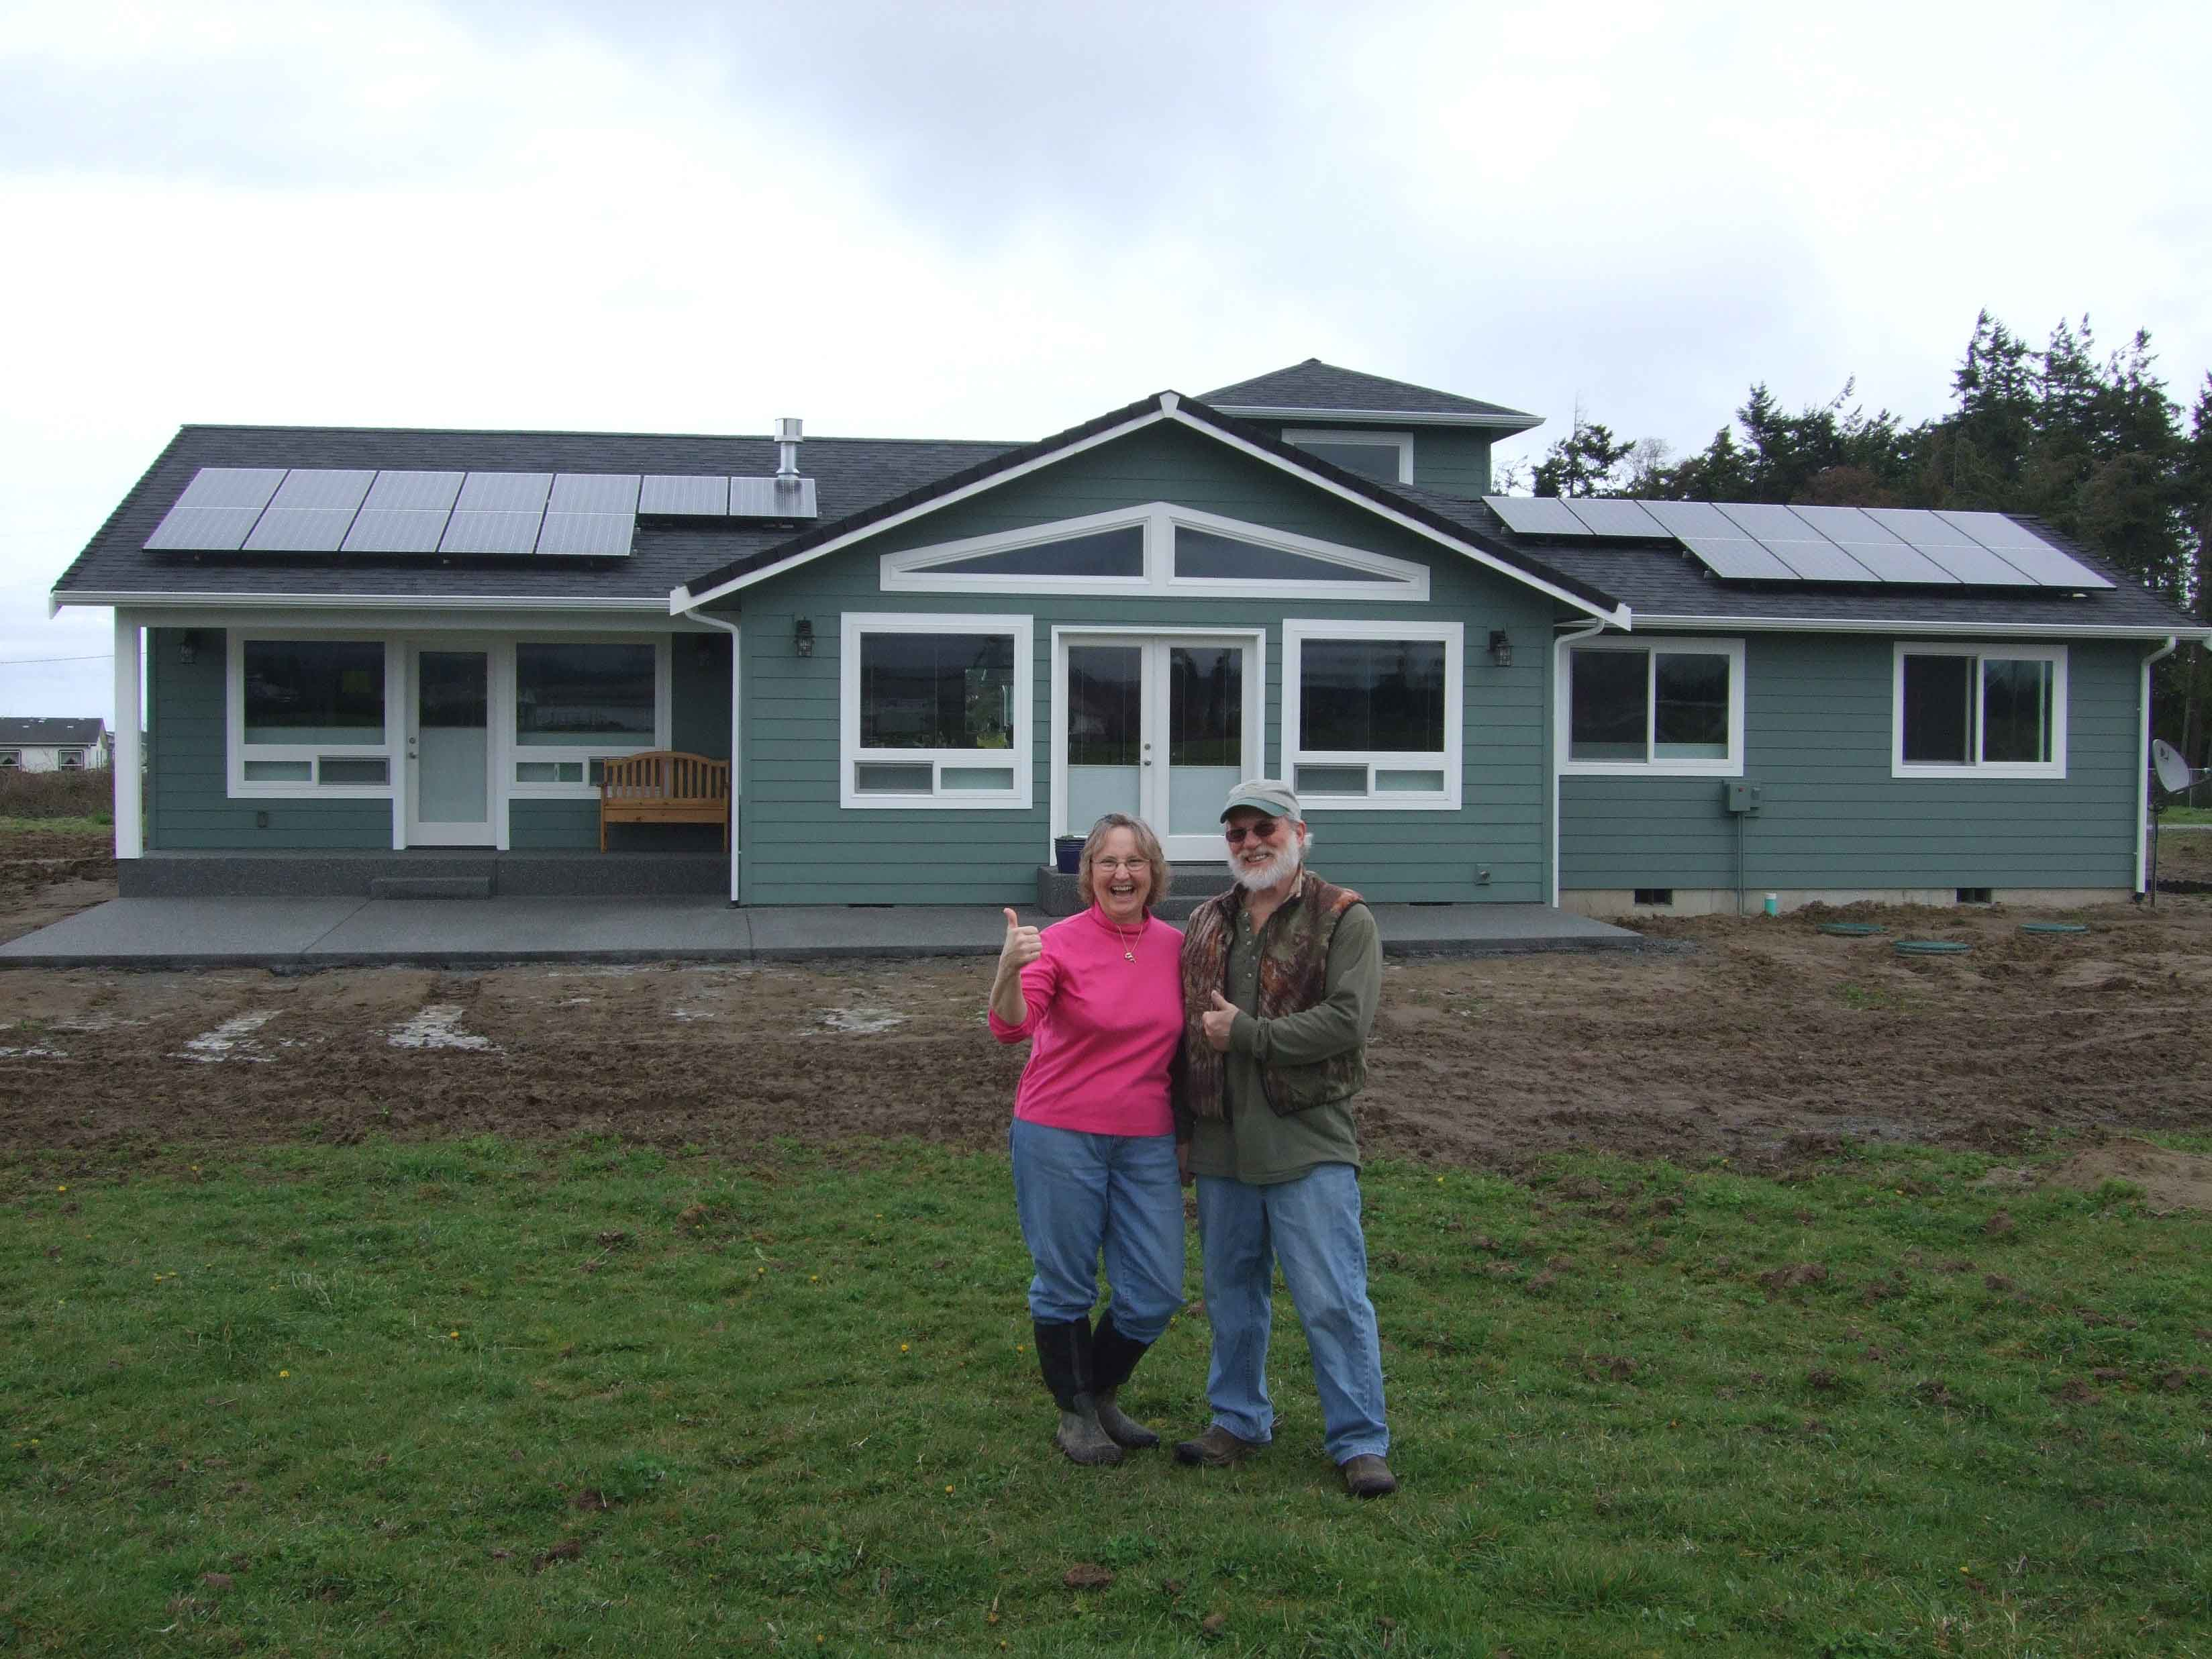 McCullough Residence, 4.68 KW, Sequim, 2010